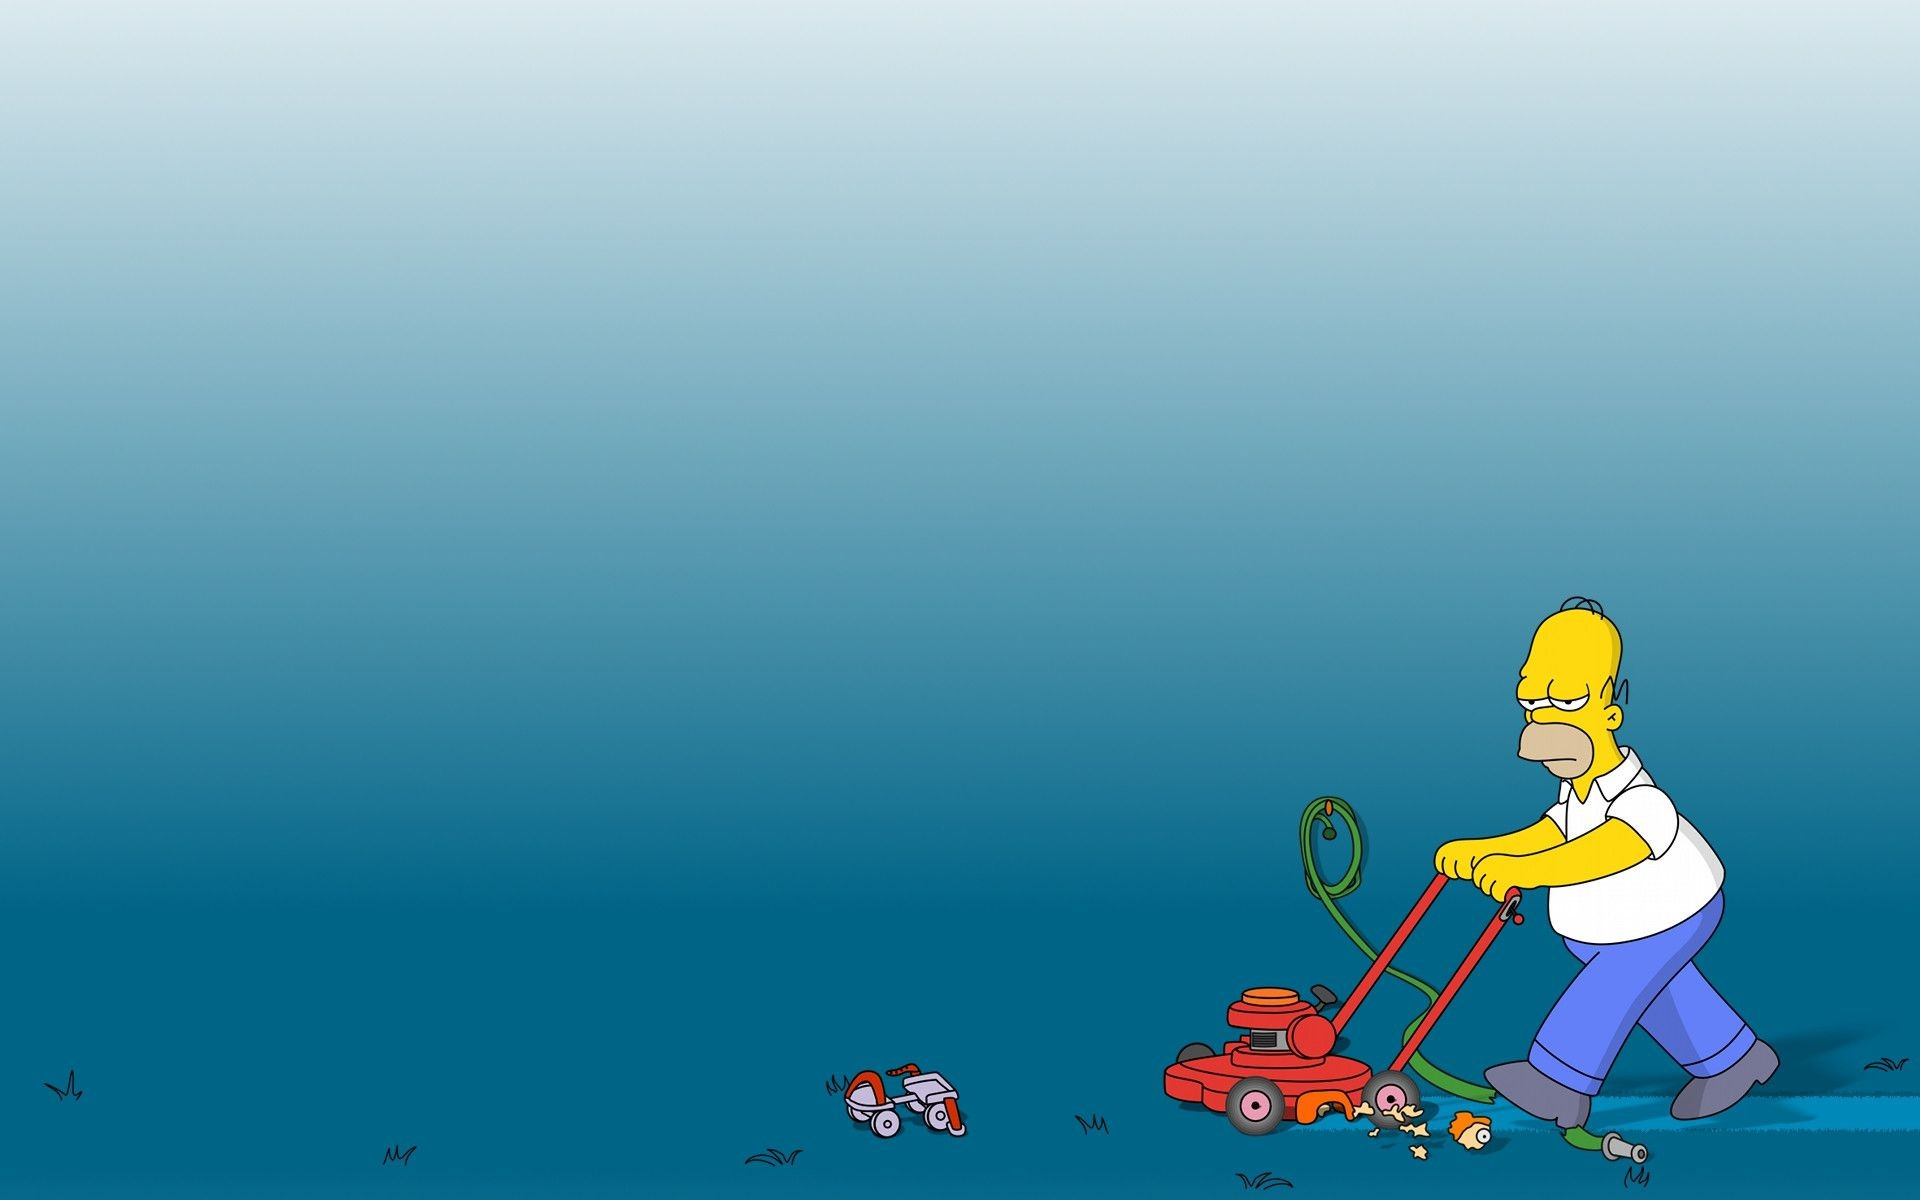 simpsons wallpaper ·① download free awesome high resolution